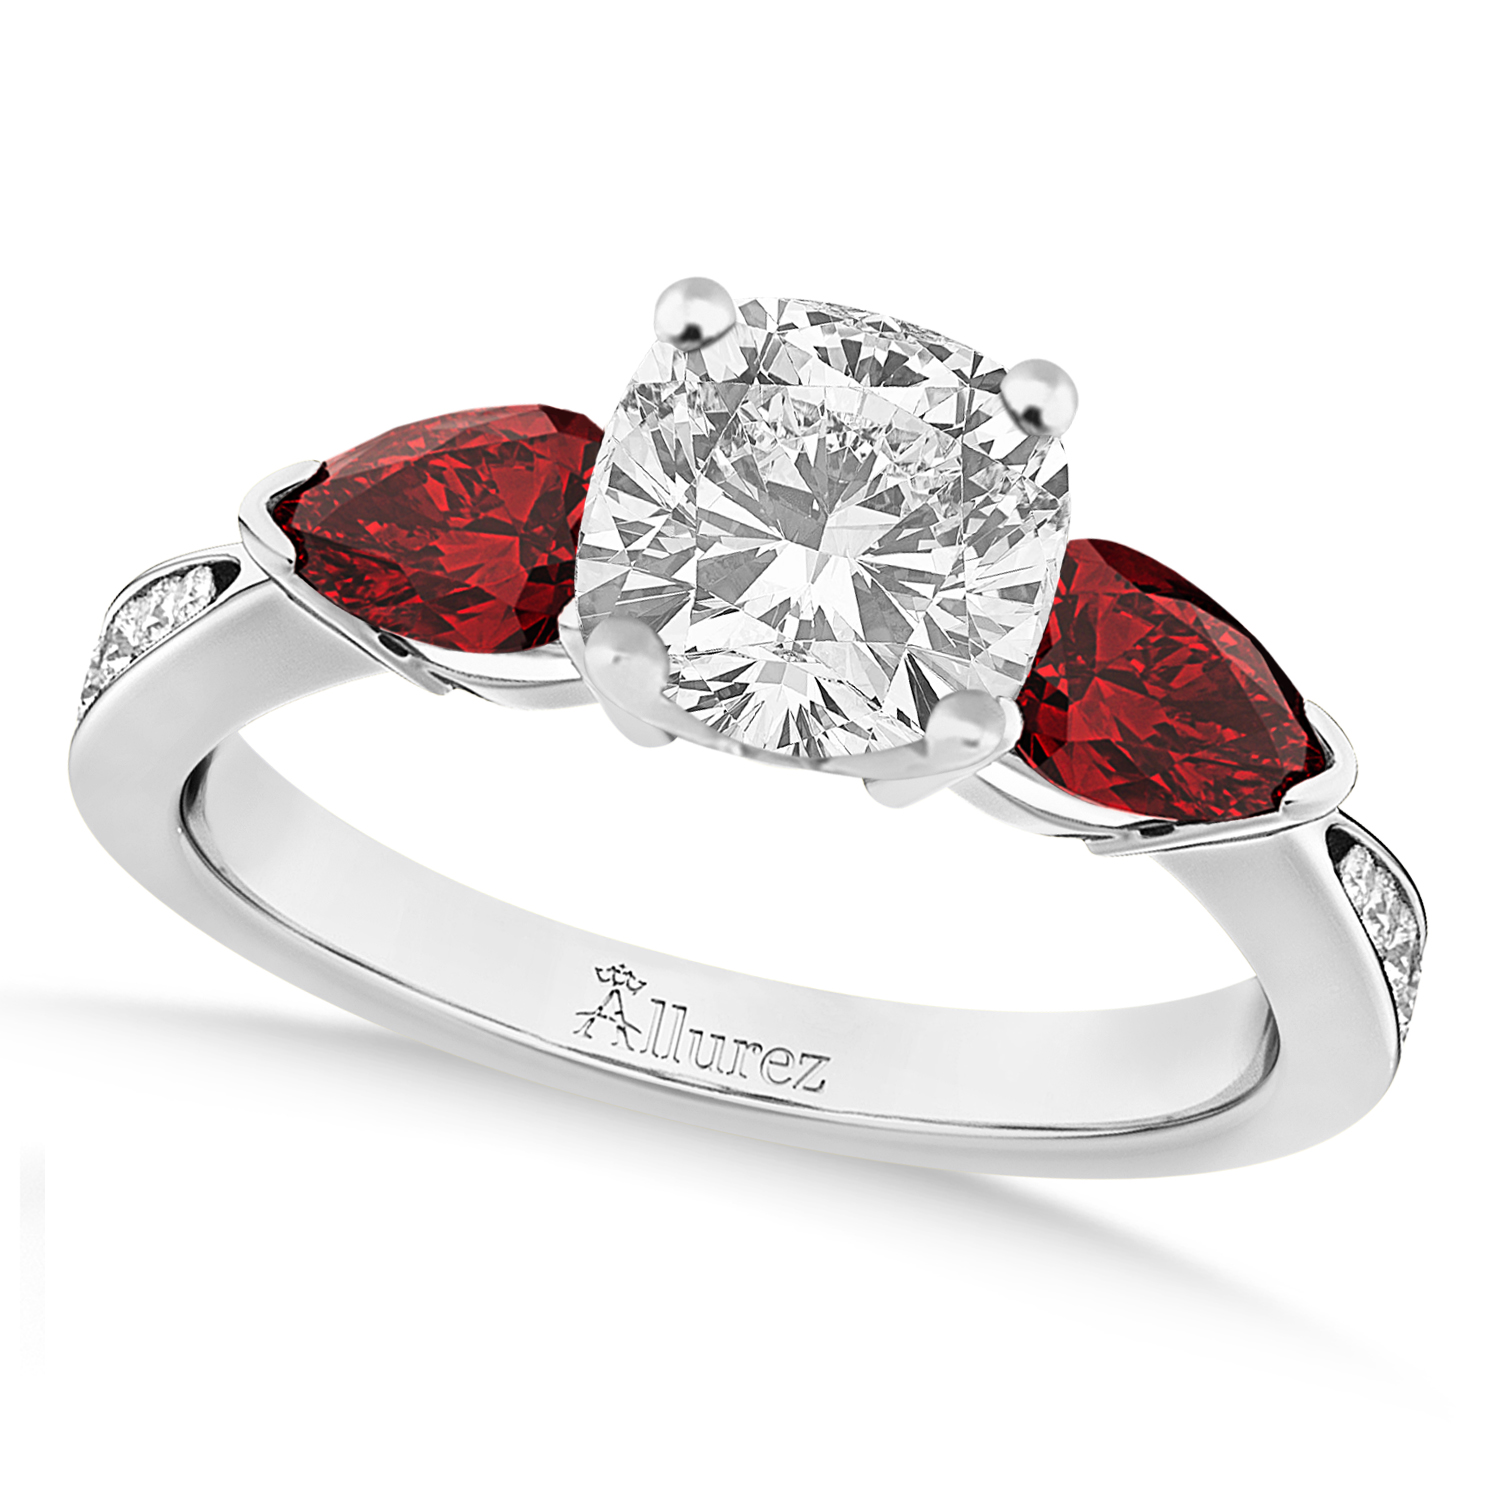 Cushion Diamond & Pear Garnet Engagement Ring in Palladium (1.29ct)